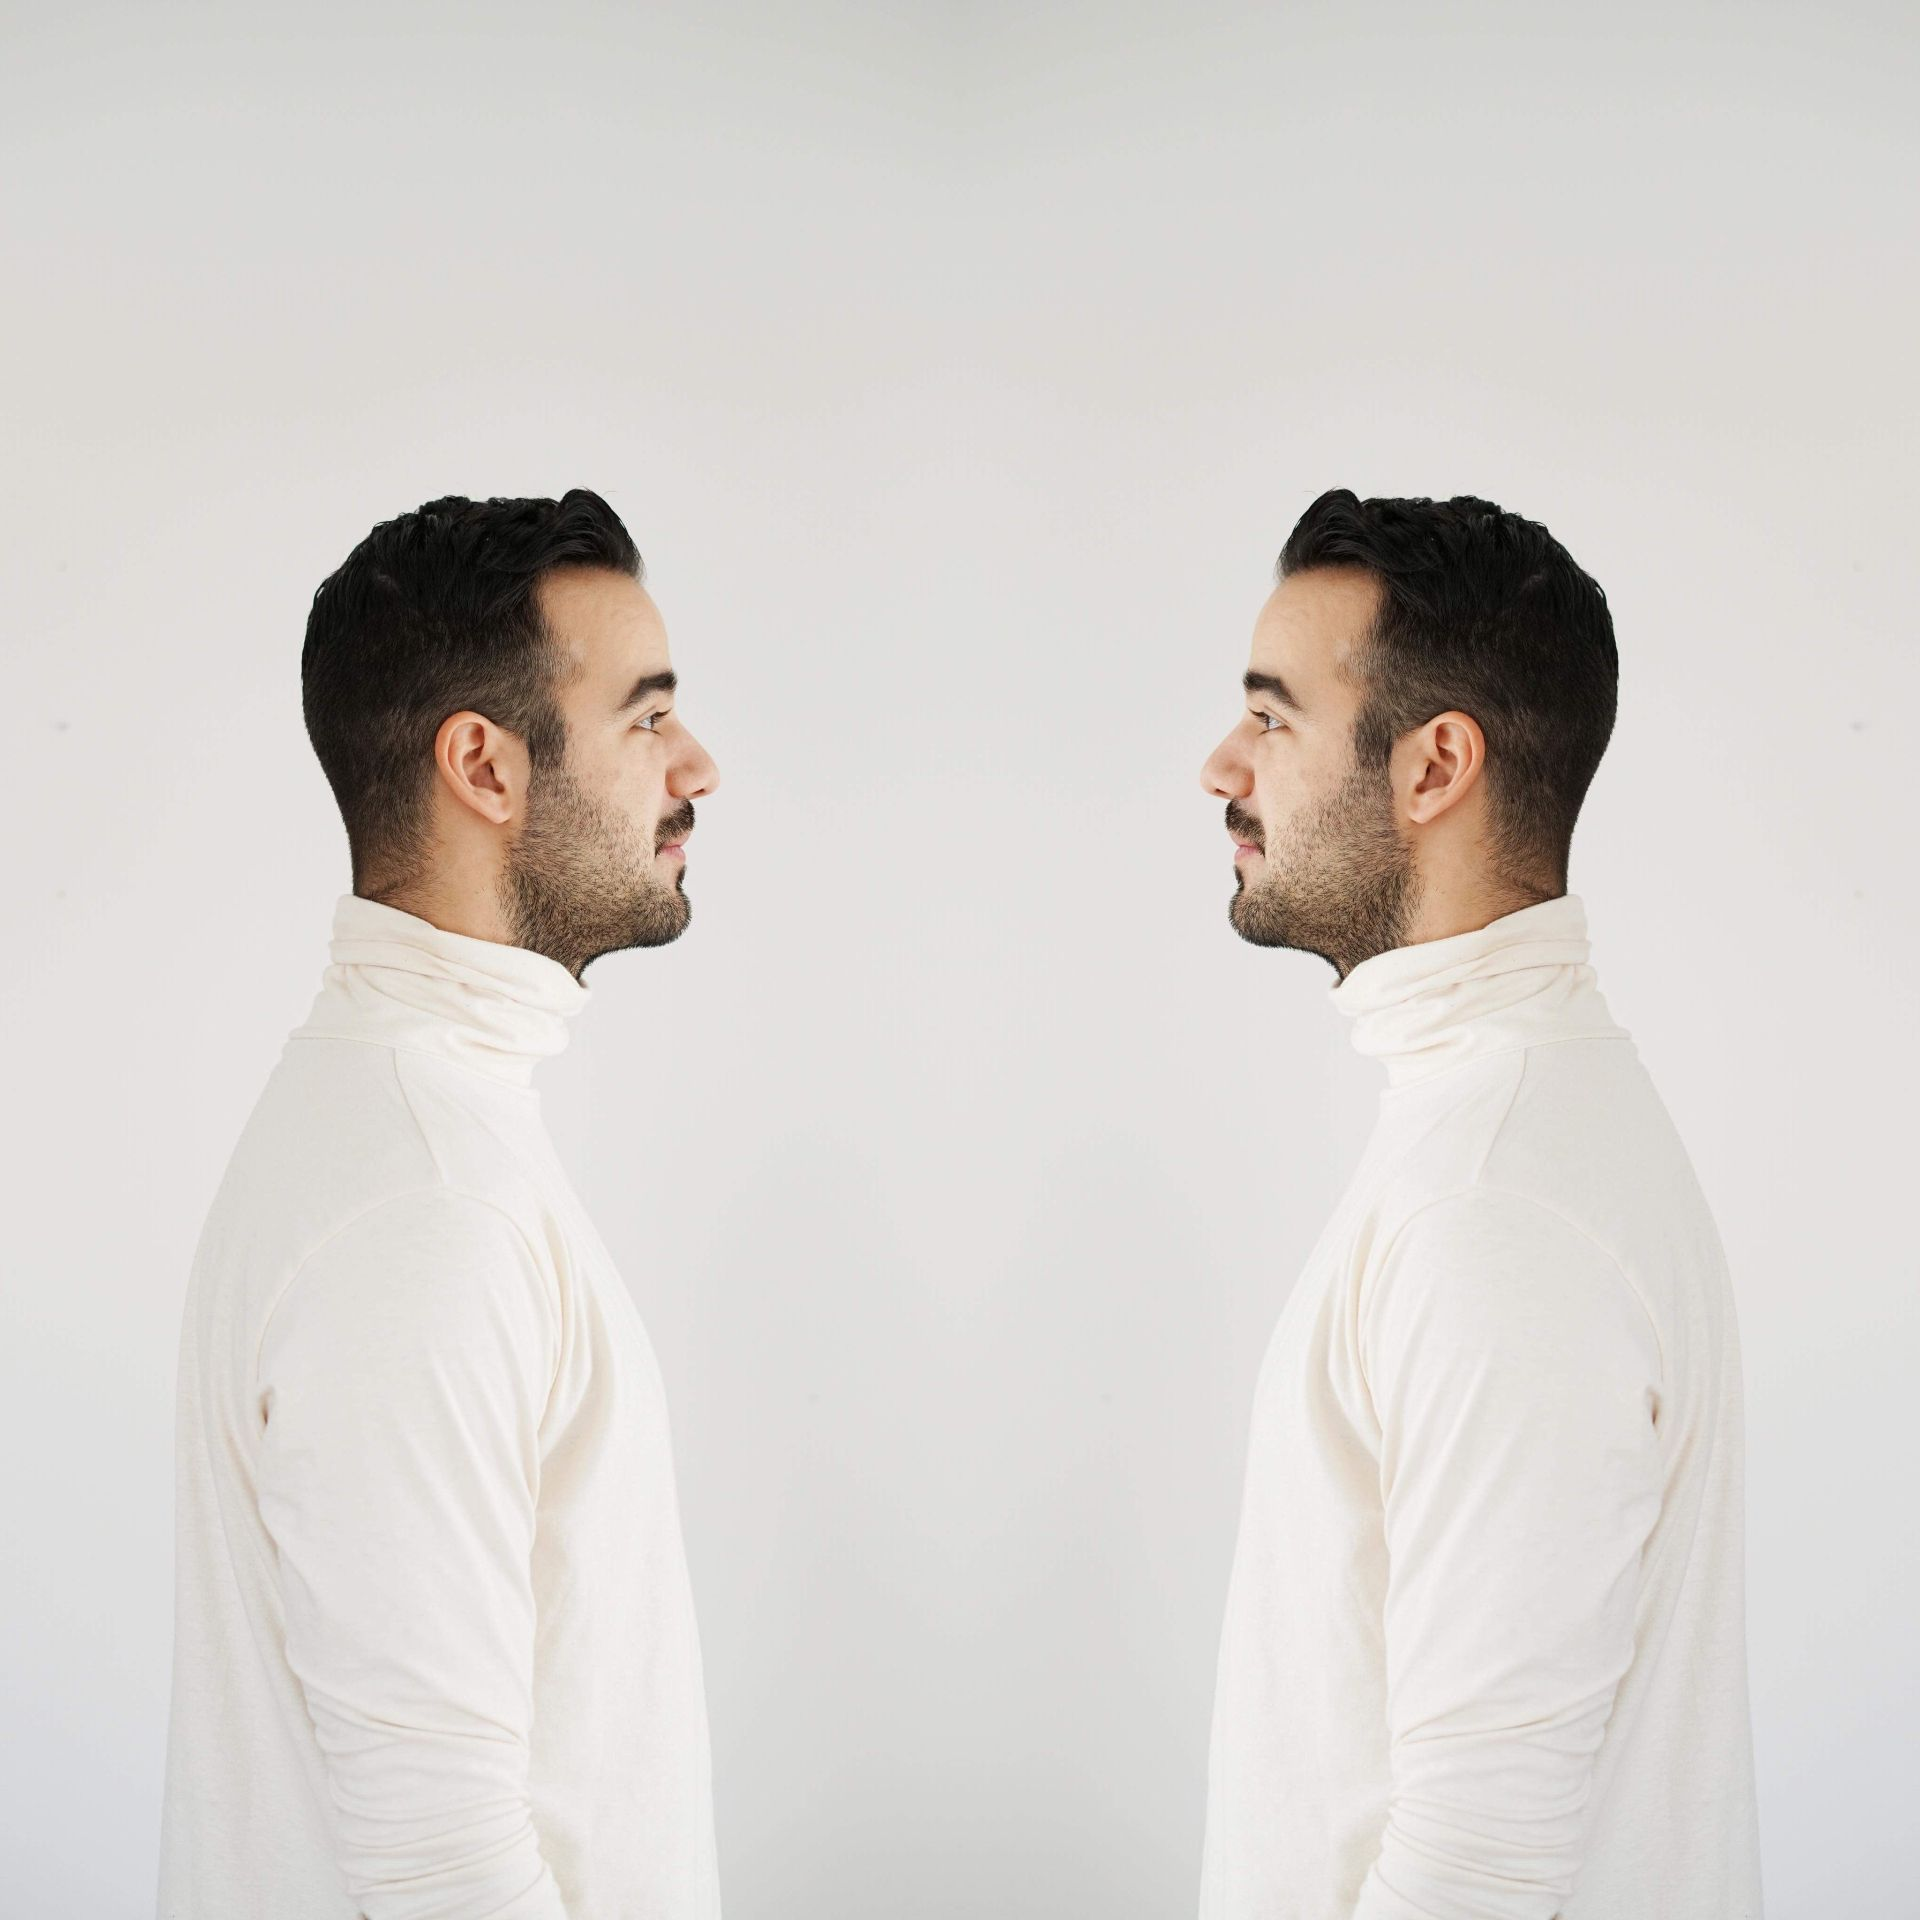 mirror image effect on a portrait of the side profile of man with brown hair wearing a white sweater